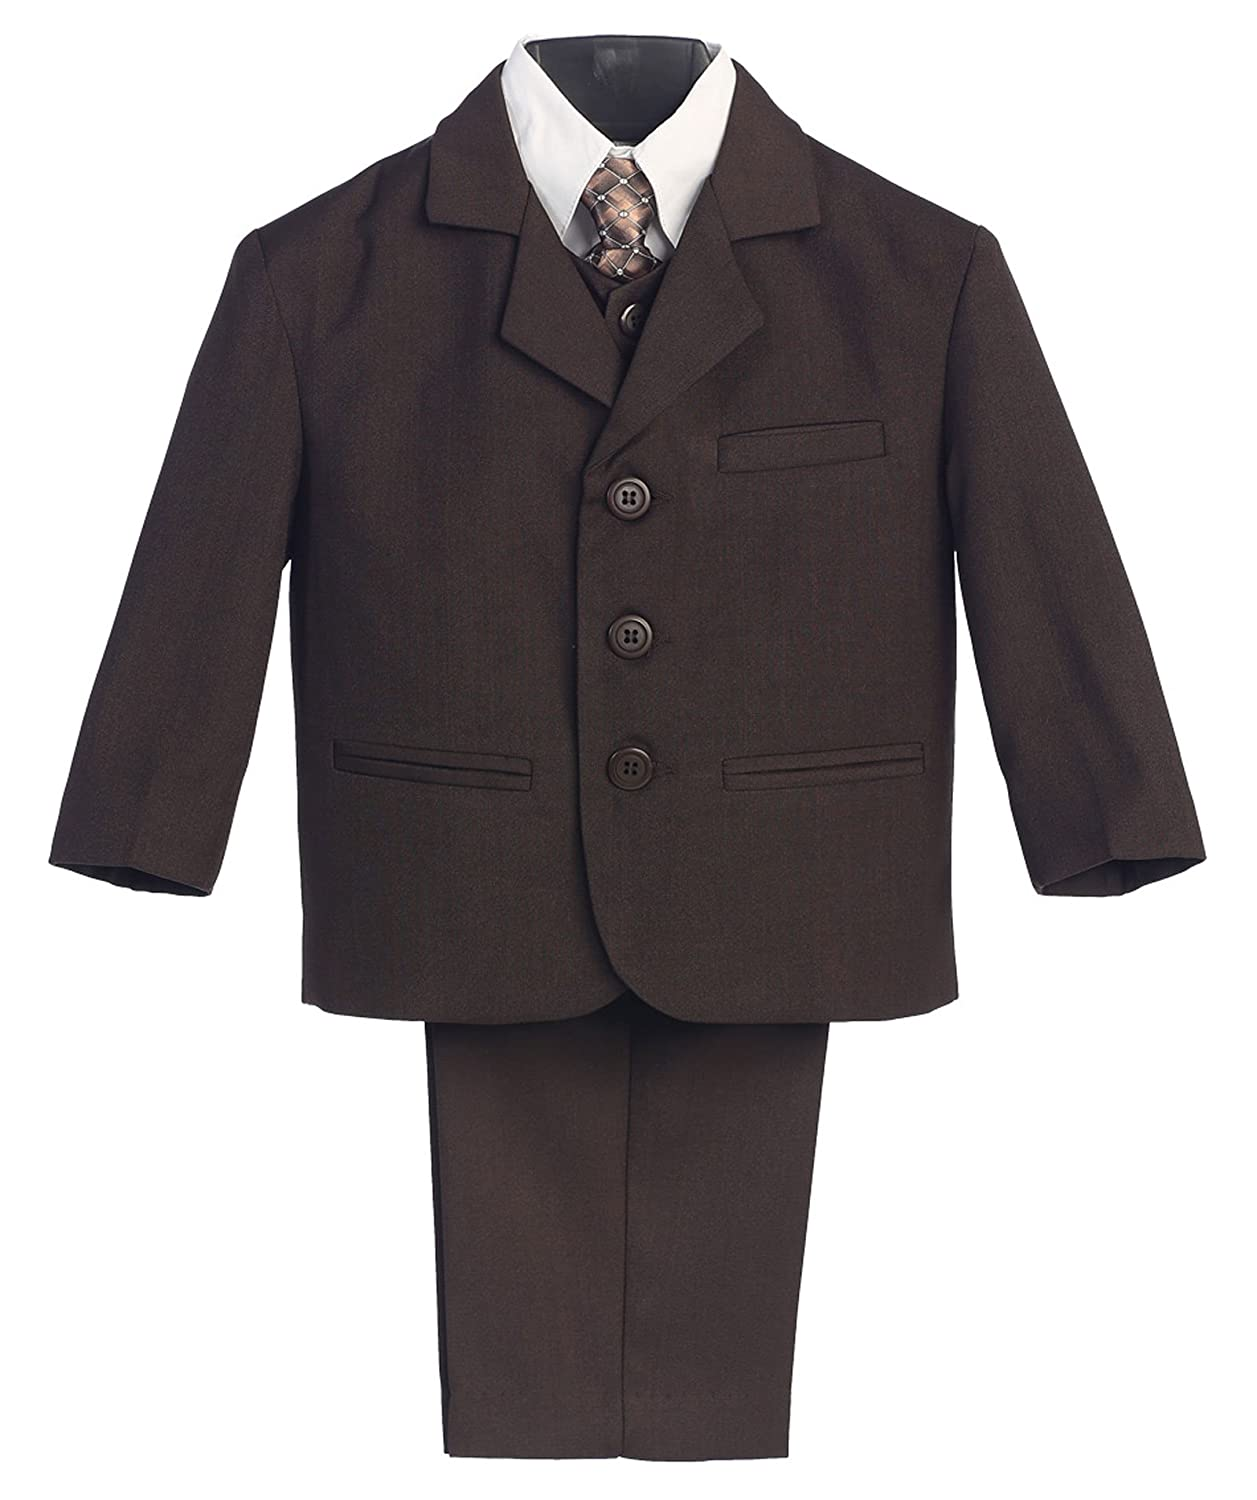 a883a46ee4cc6 Amazon.com: Avery Hill Infant Toddler Husky Boy's Dress Suit with Shirt Vest  & Tie (5 Piece): Clothing